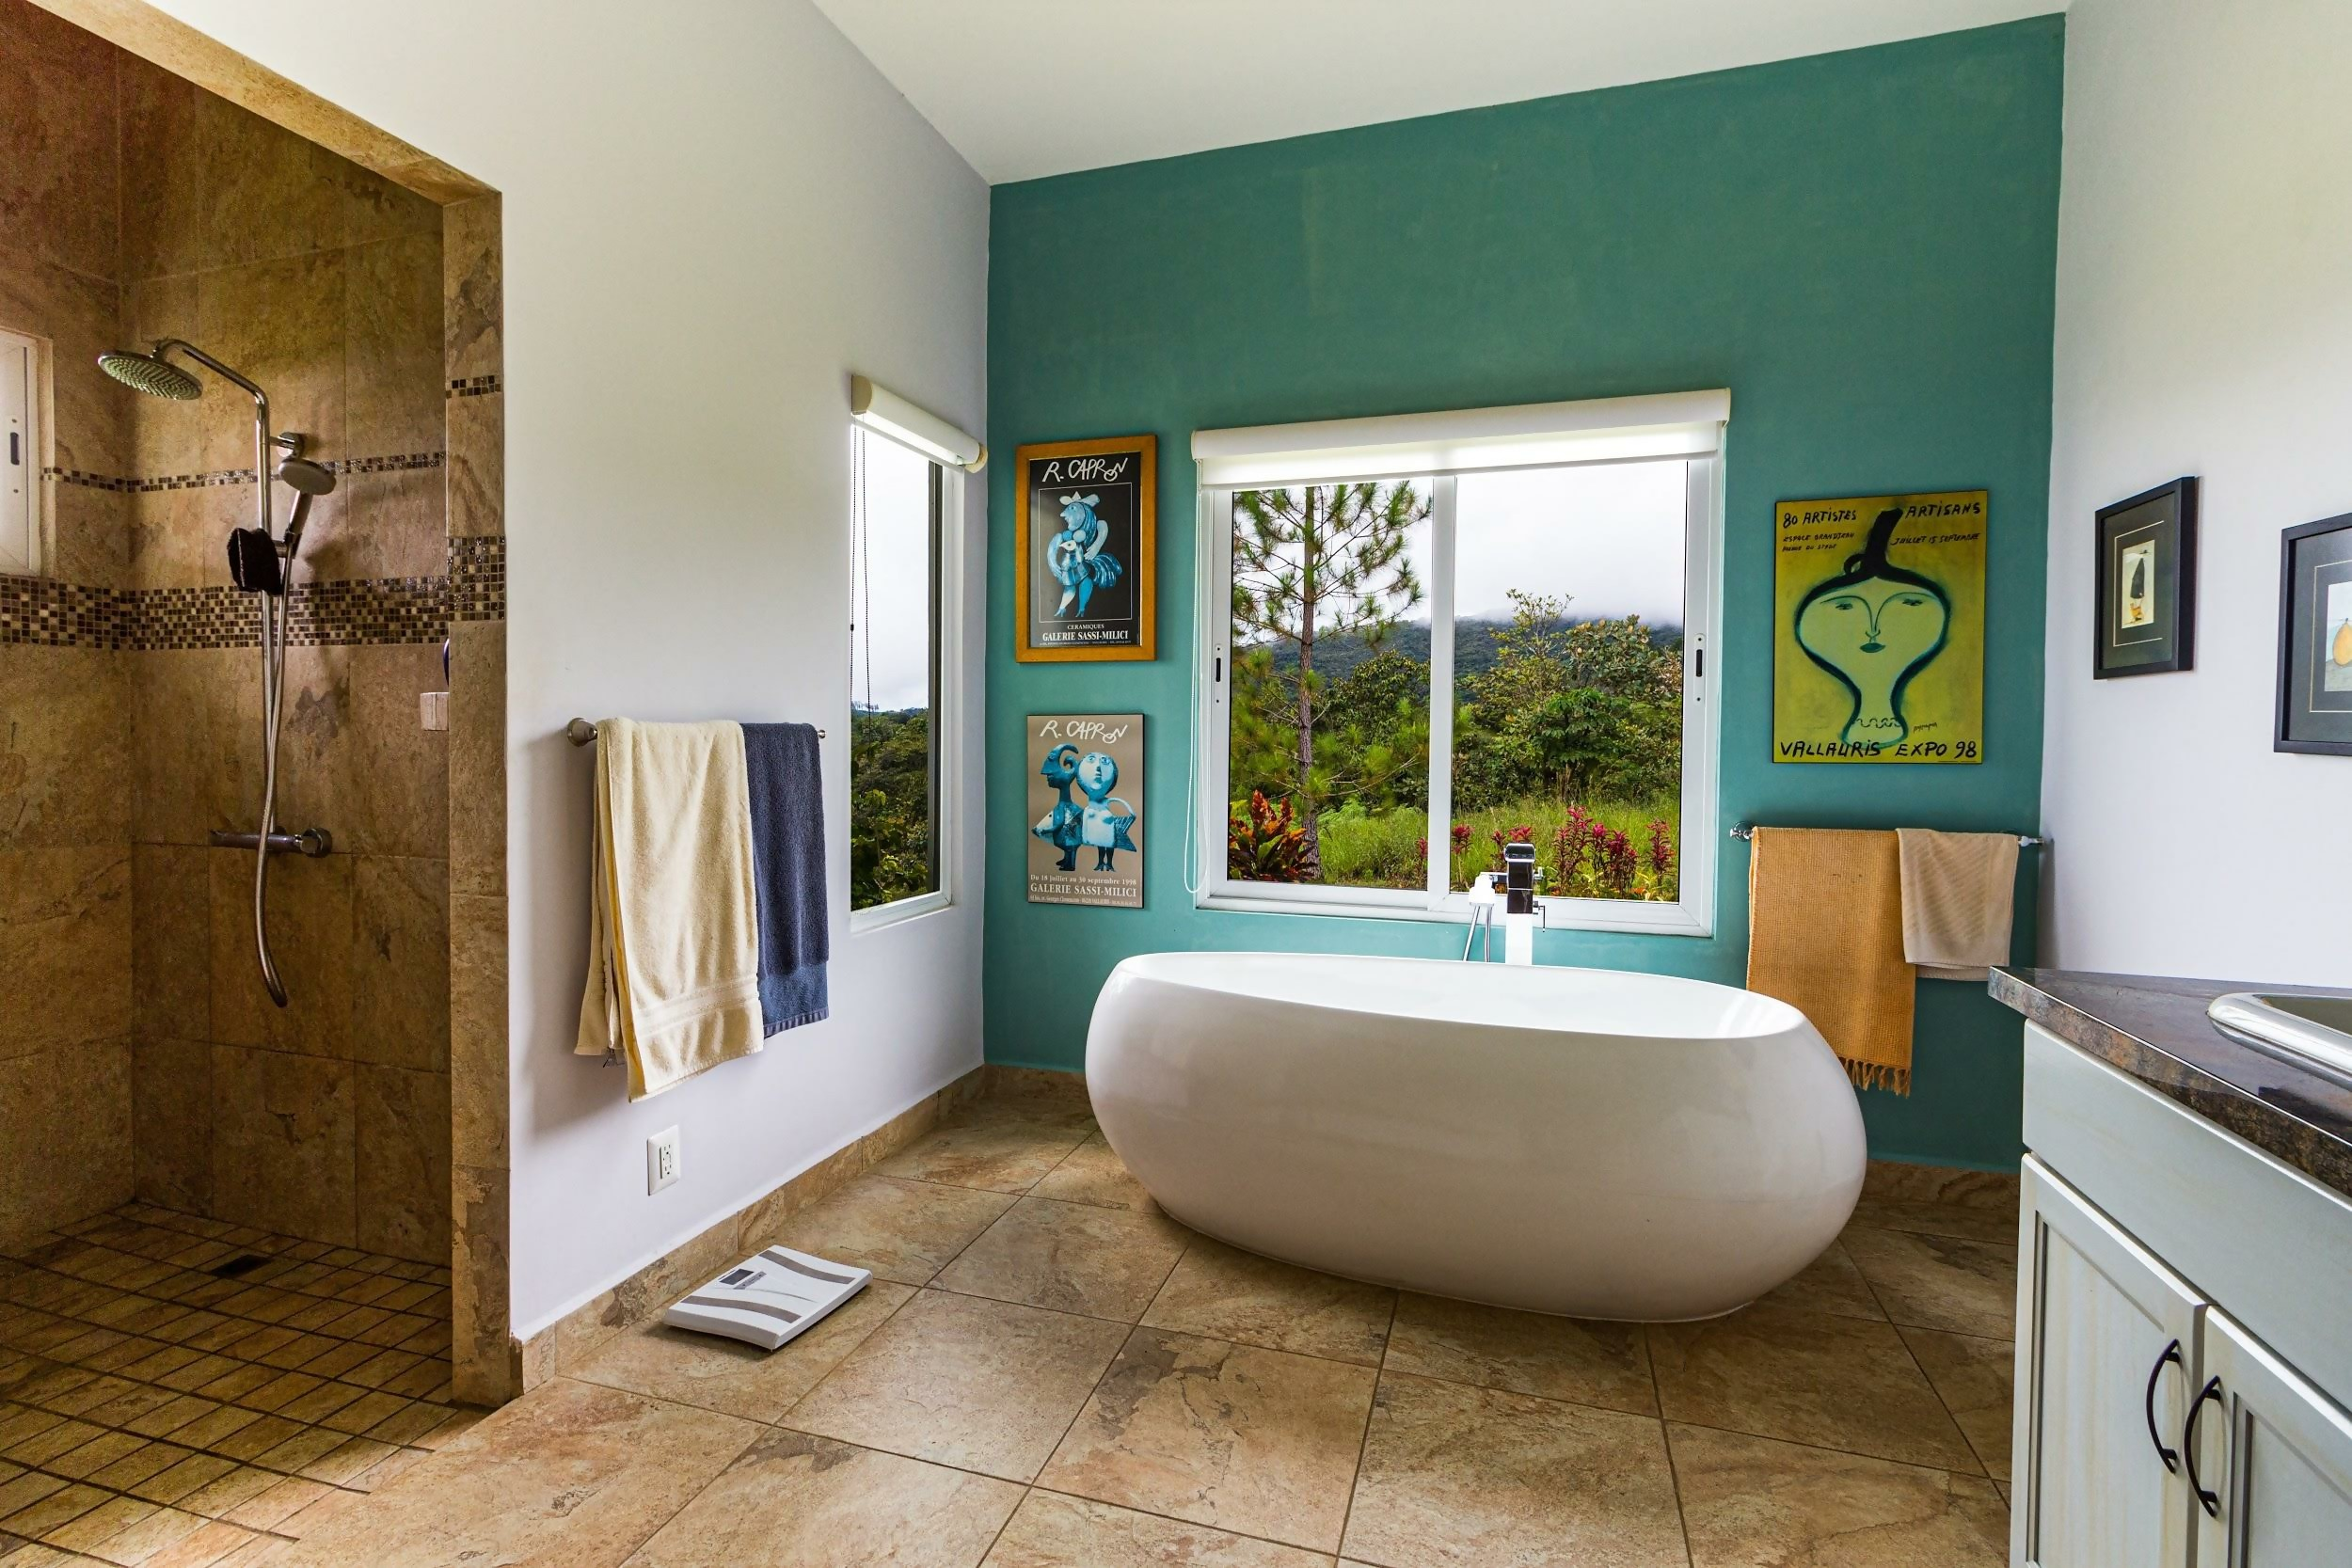 Bathroom with standalone bathtub in front of bright-green accent wall